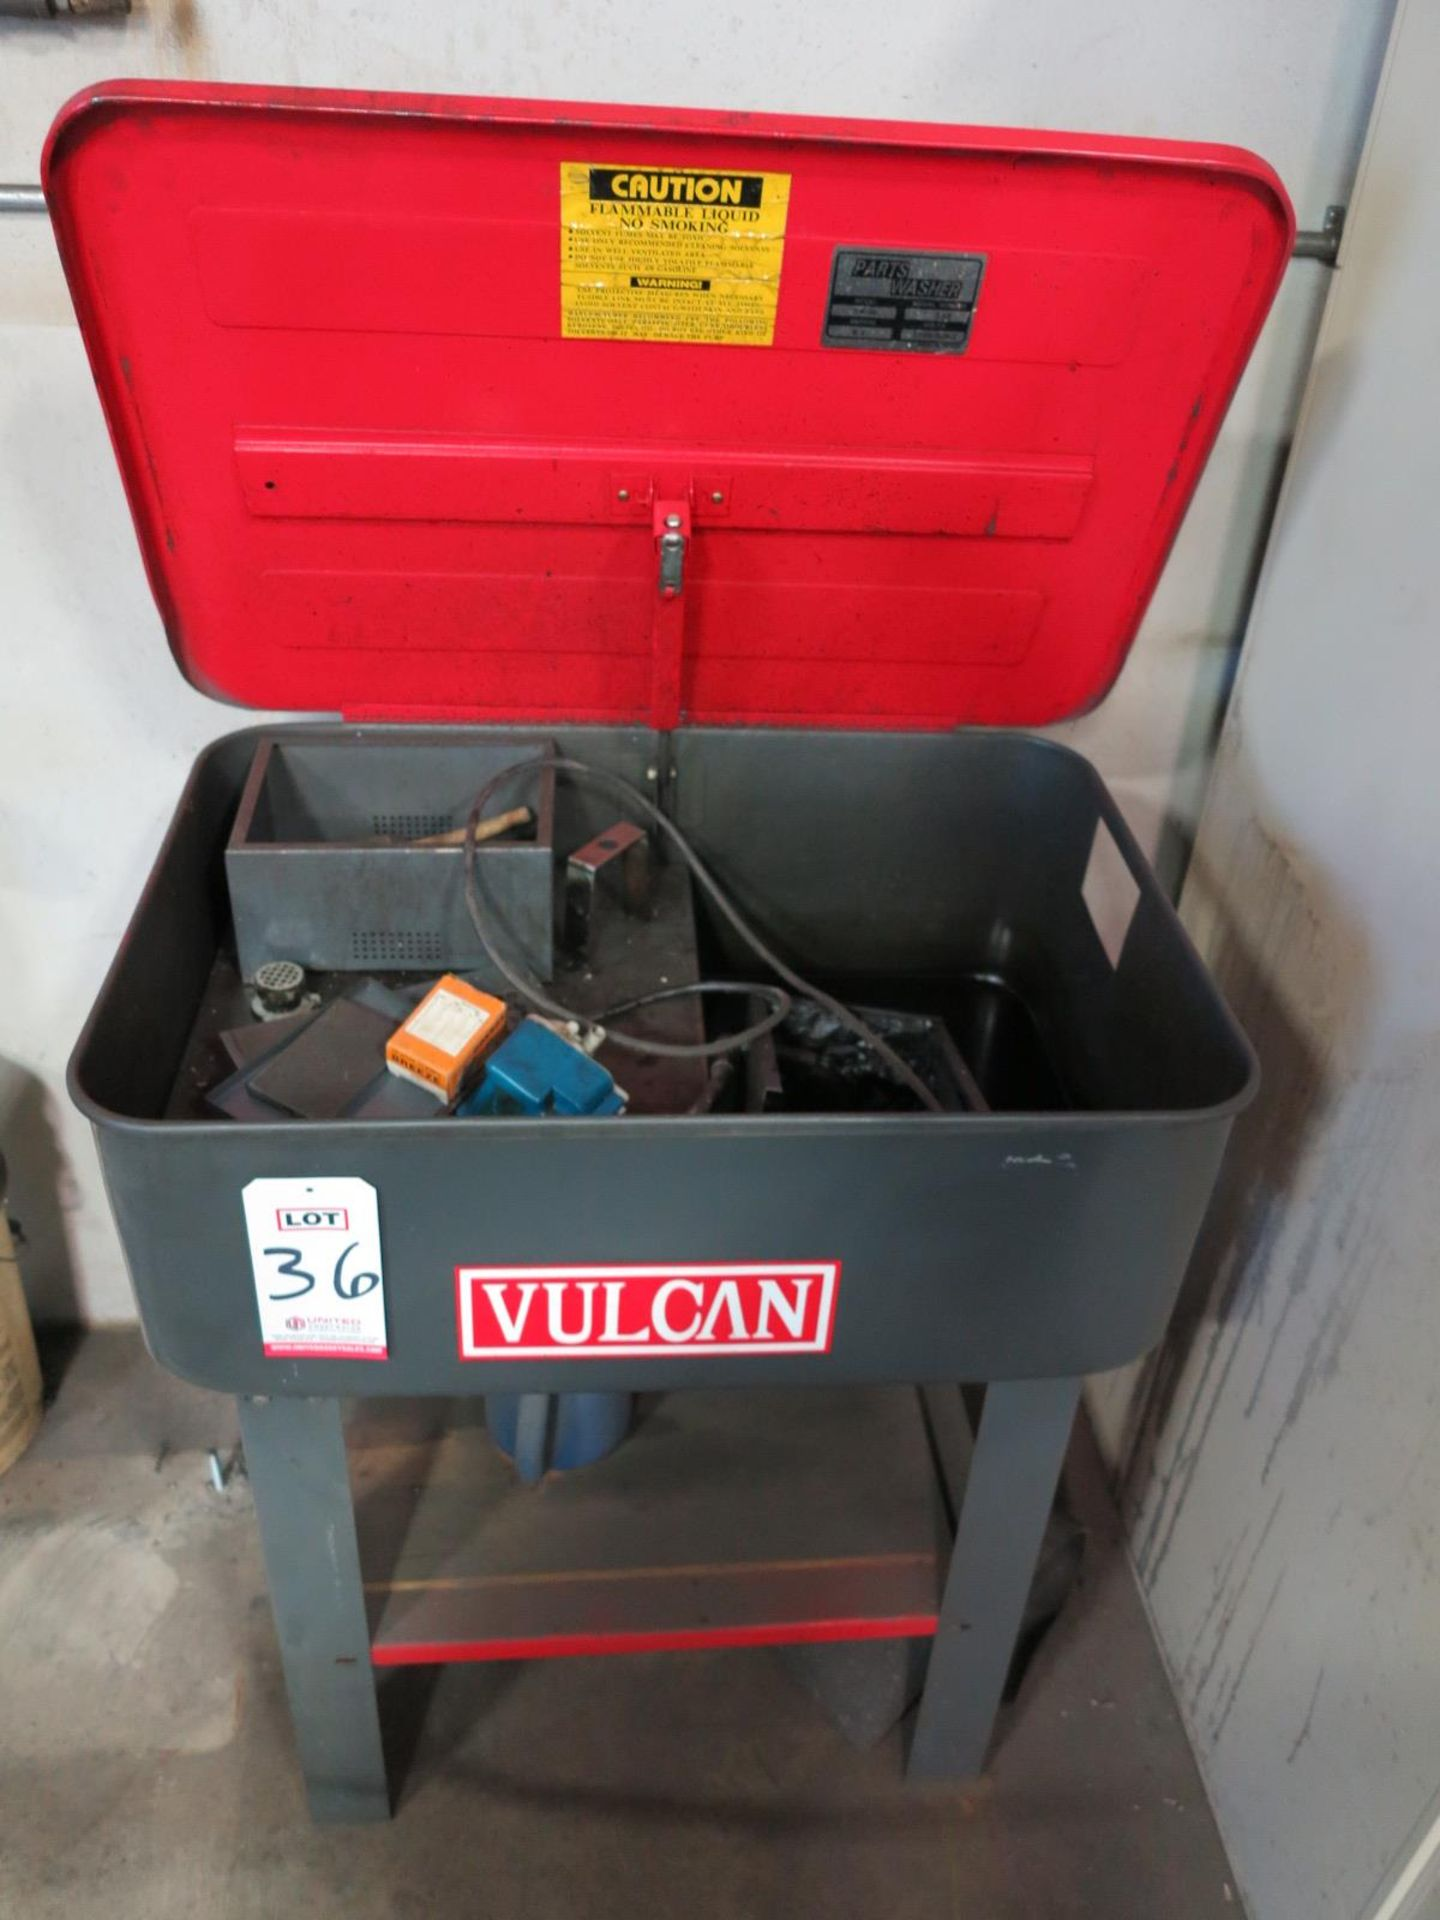 "Lot 36 - VULCAN PARTS WASHER, TUB MEASURES 29"" X 20"" X 10"""